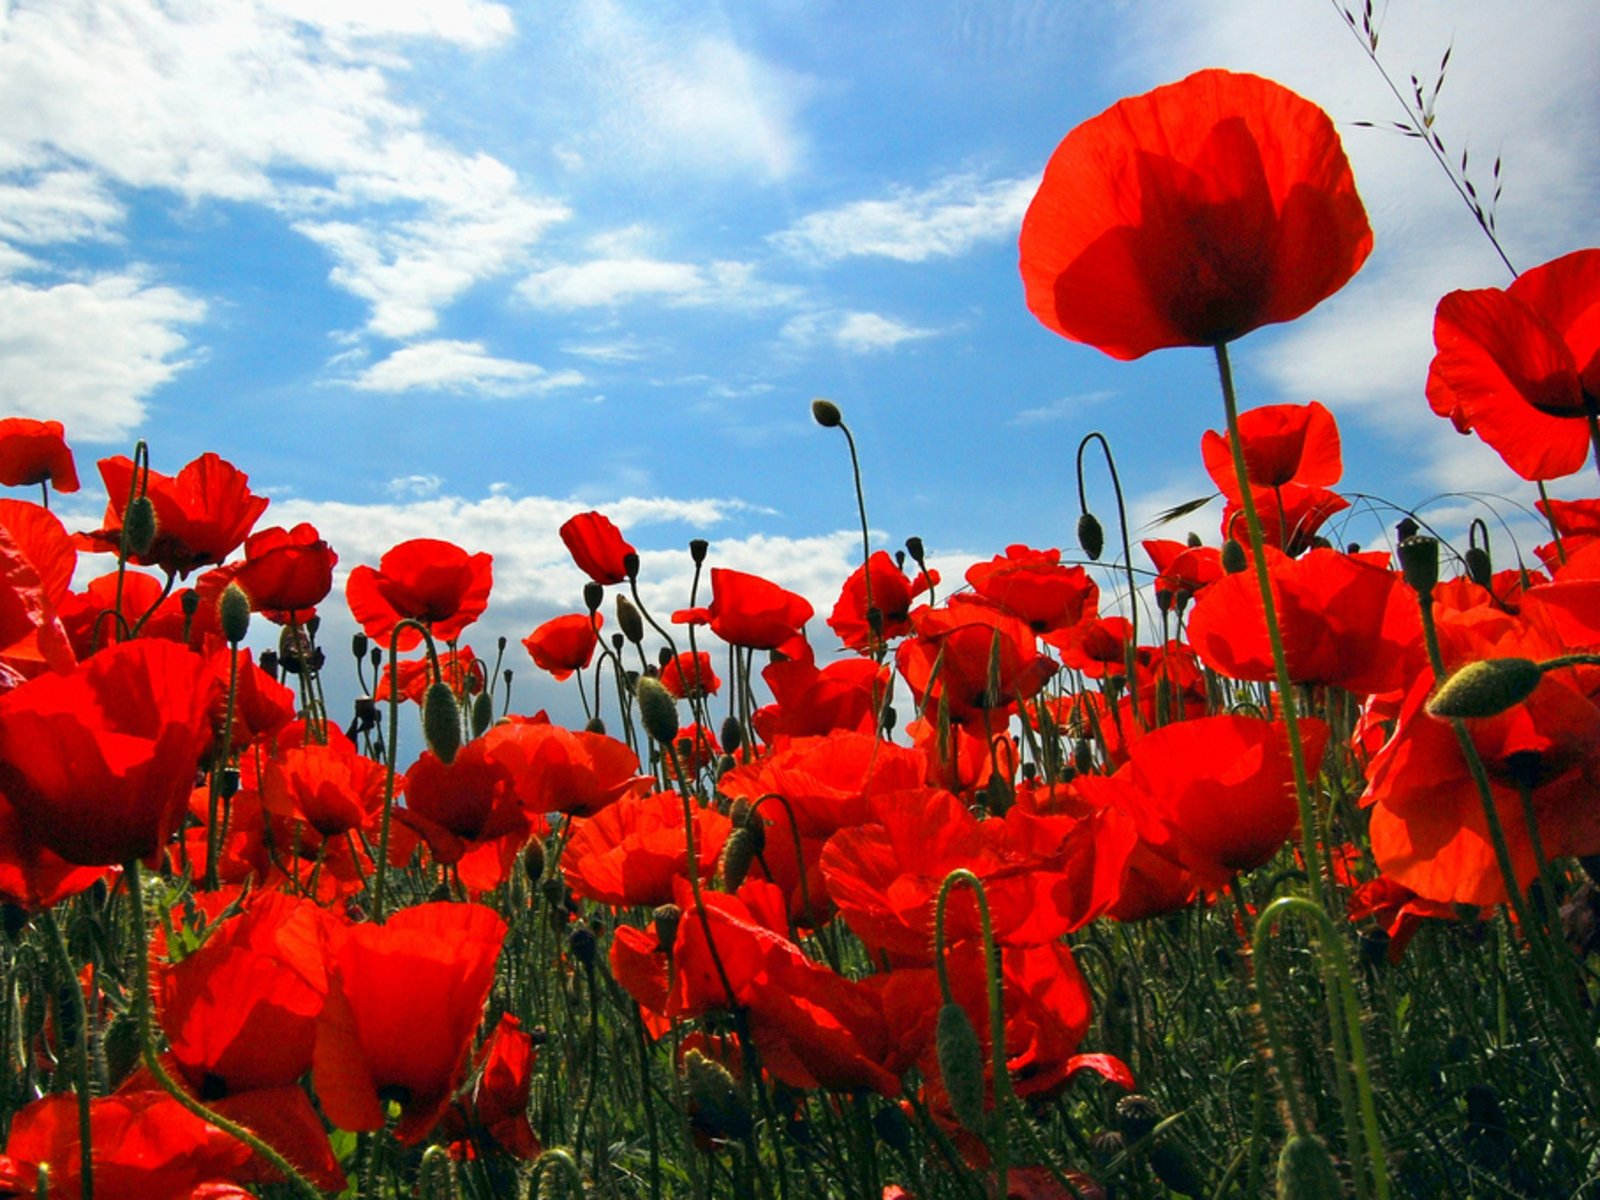 Poppy wallpaper and background image 1600x1200 id 245403 - Red flower desktop wallpaper ...